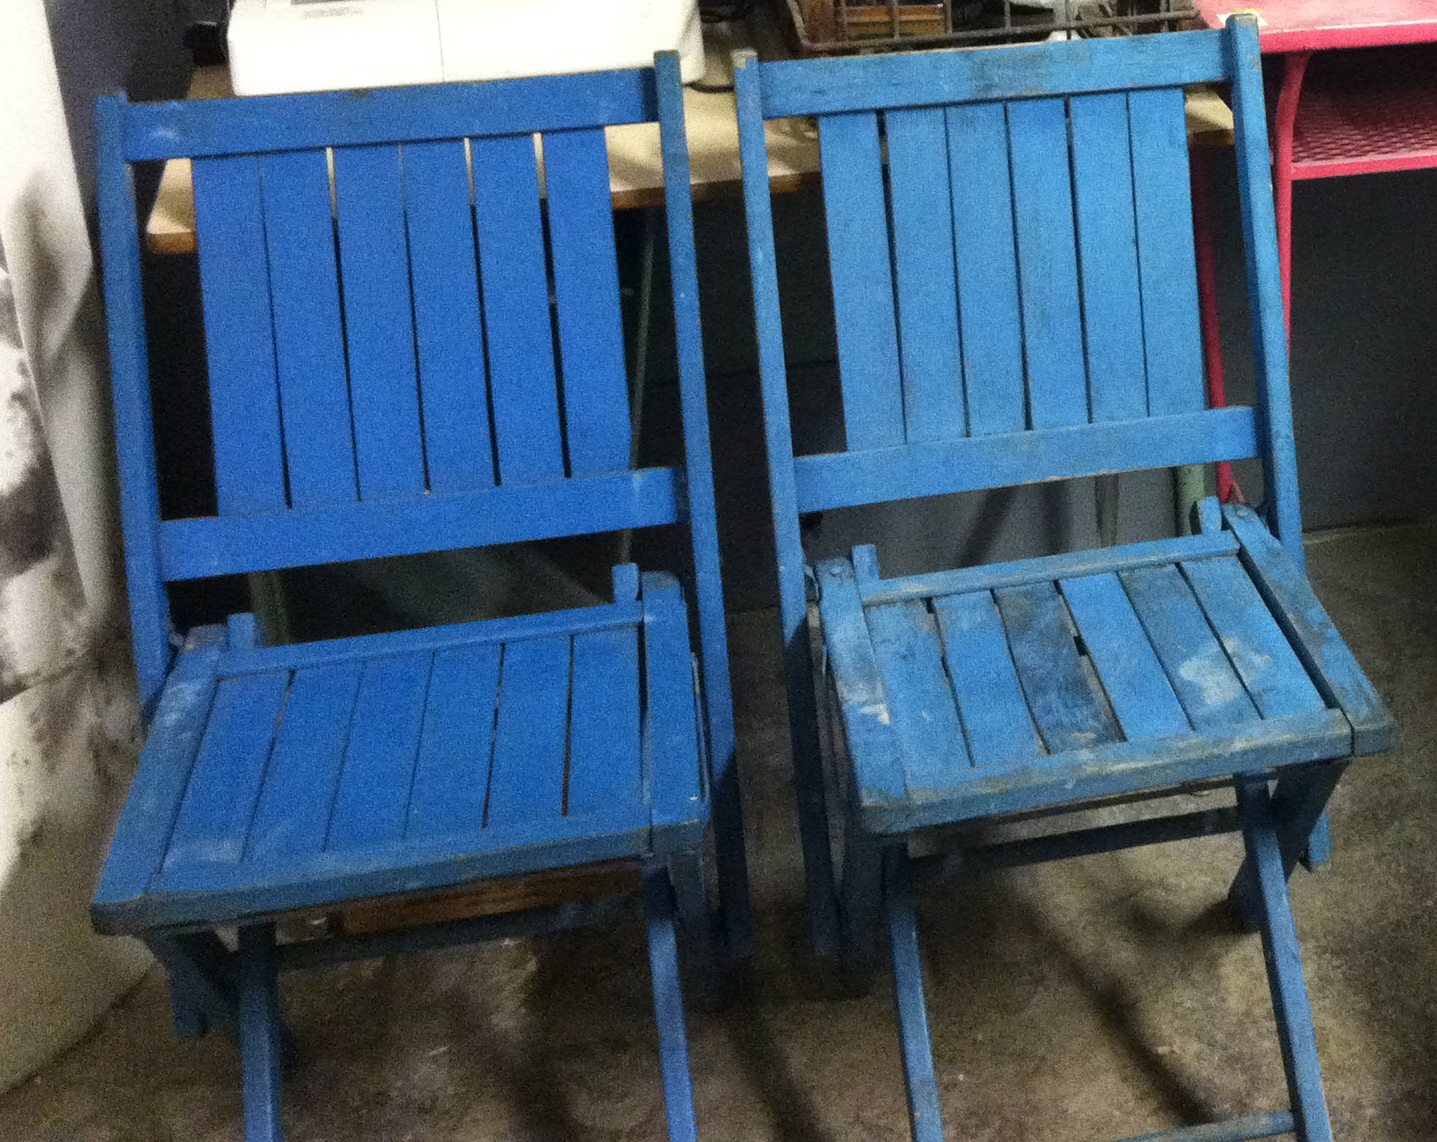 2 blue wooden folding chairs 15 a piece blue lounge chair 25 or best offer pallet coffee table on rolling casters 25 vintage school pull down map